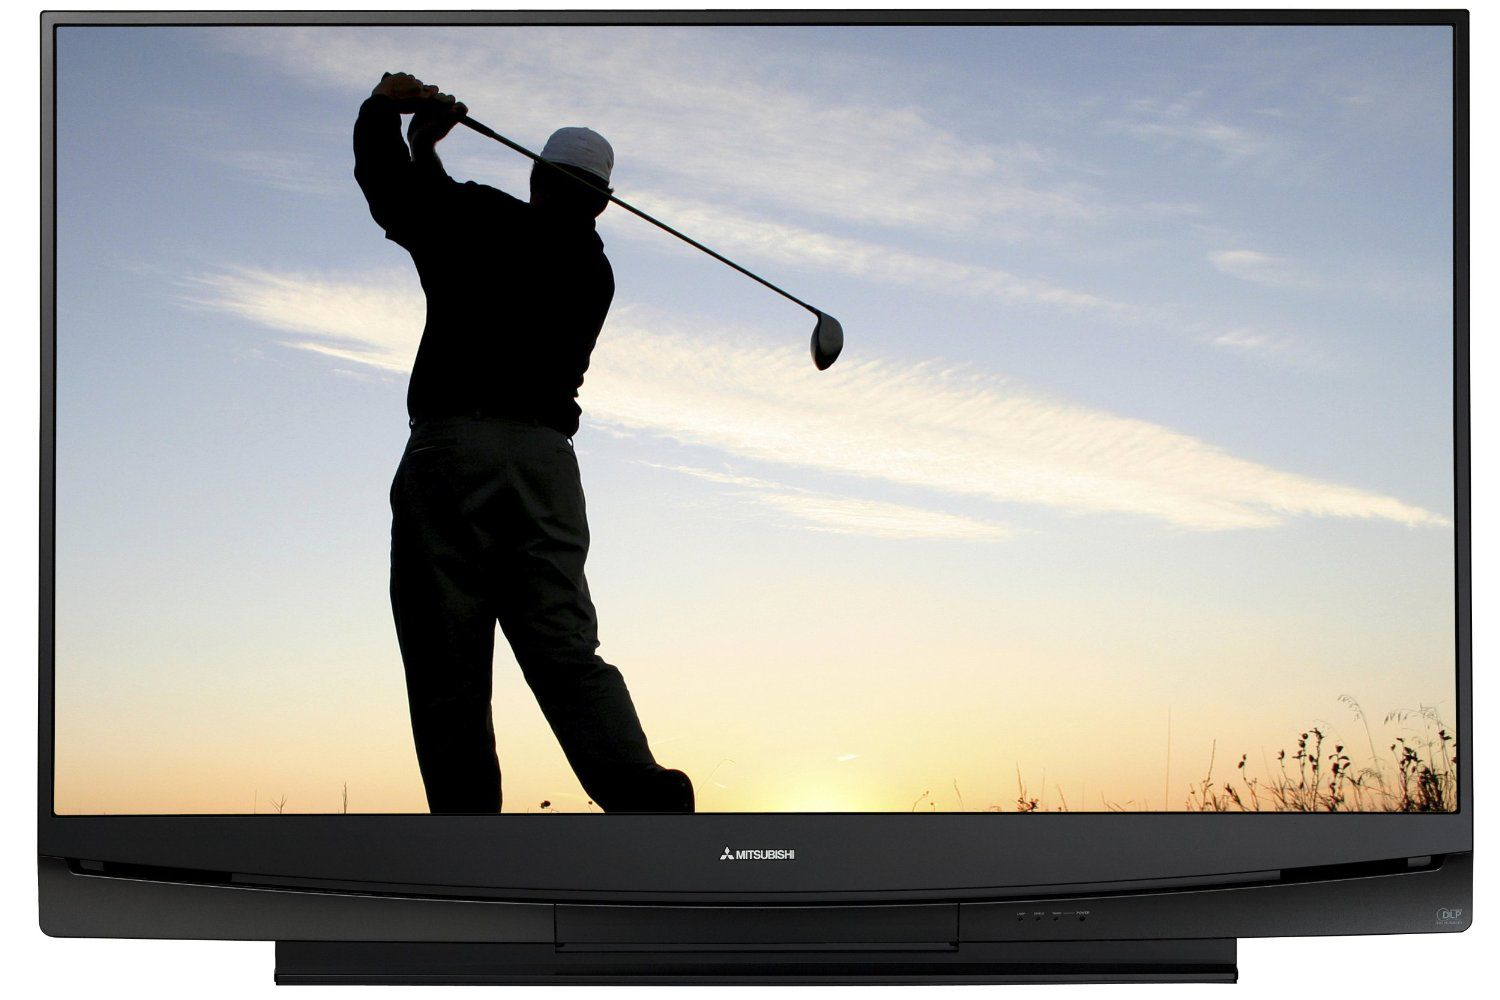 replacement installing samsung how mitsubishi tv replacing to dlp fix tvs youtube watch repair lamp